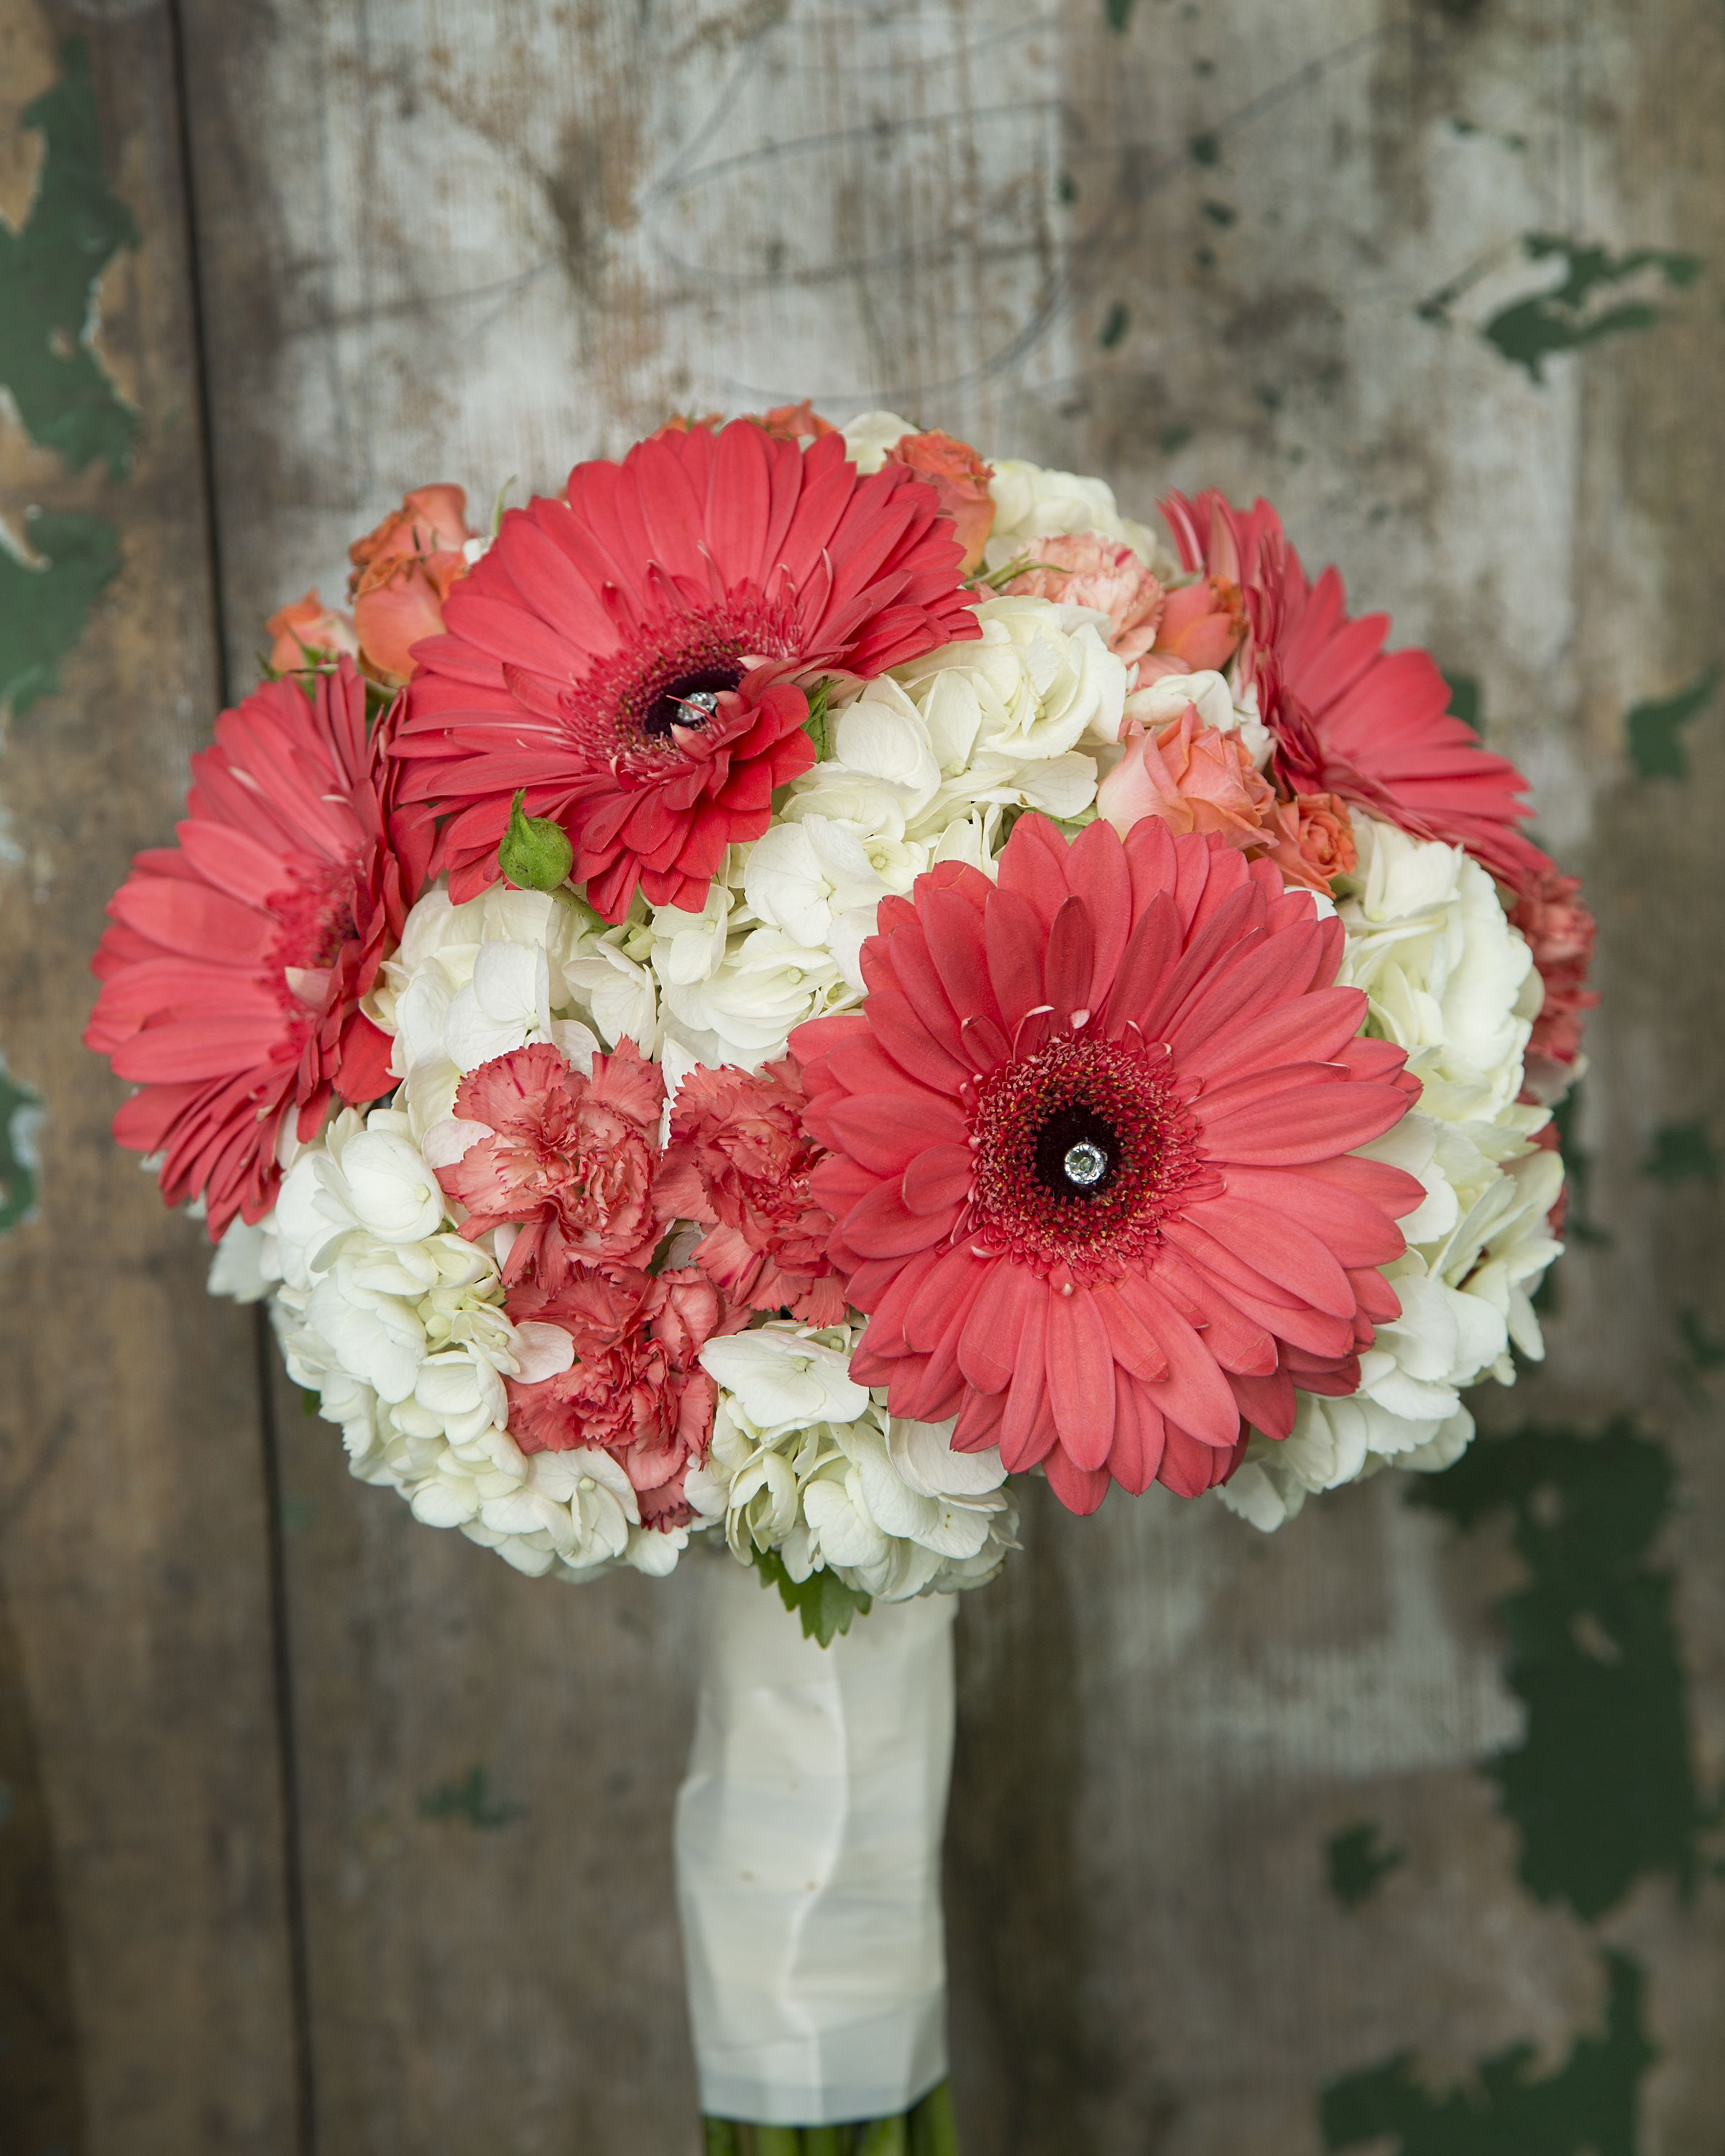 Coral gerbera, carnations and spray roses with a background of white hydrangea make up this stunning brides bouquet.